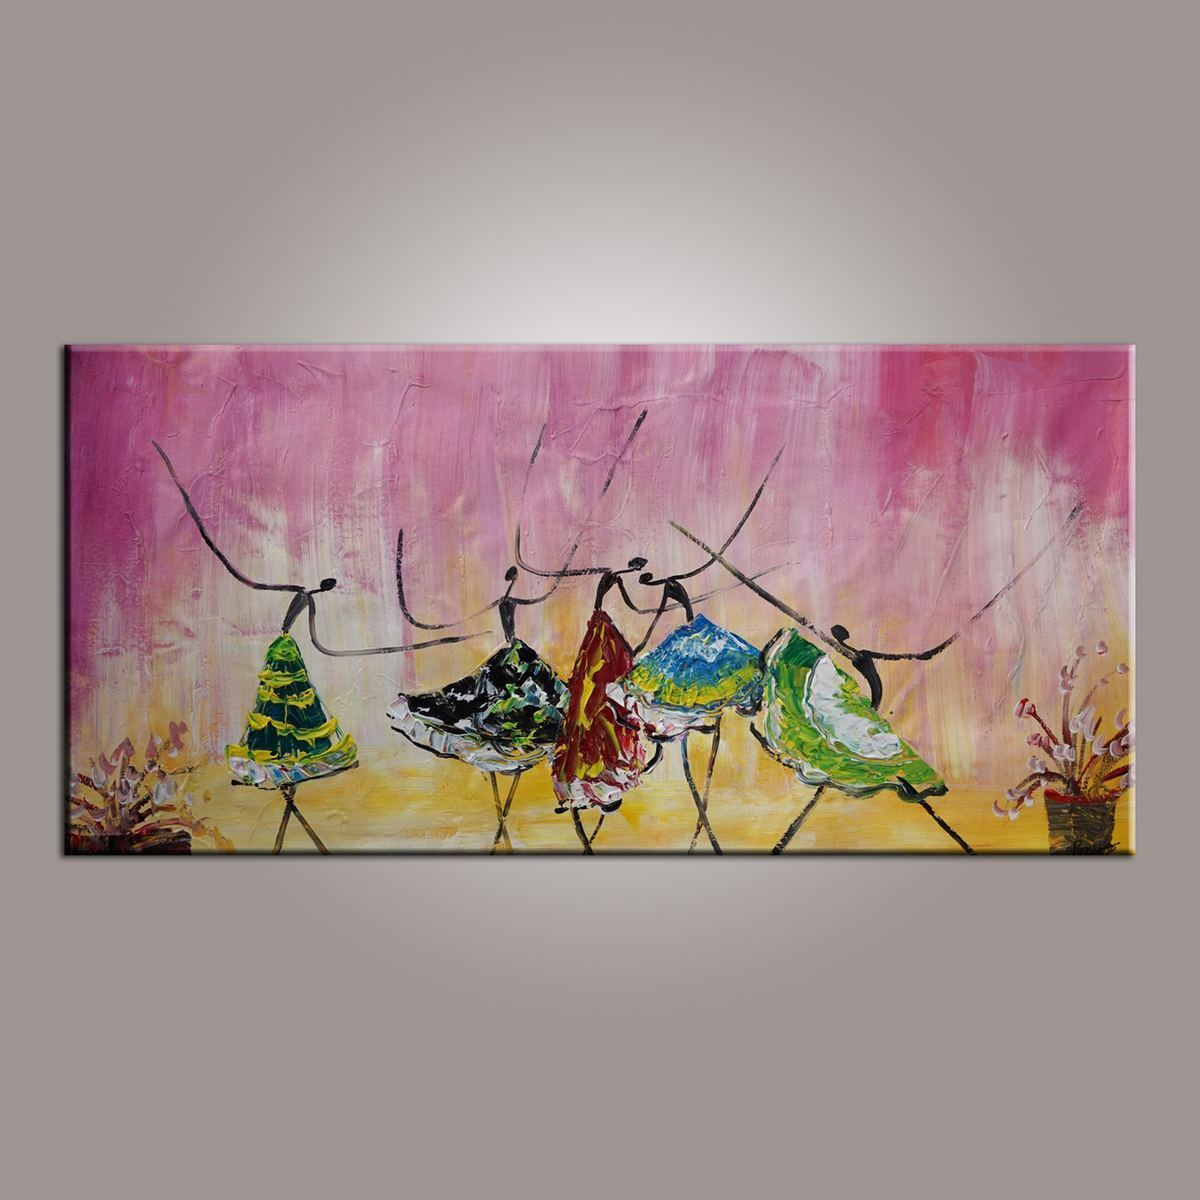 Large Art, Ballet Dancer Art, Canvas Painting, Abstract Painting, Abstract Art, Wall Art, Wall Hanging, Bedroom Wall Art, Modern Art, Painting for Sale - Silvia Home Craft